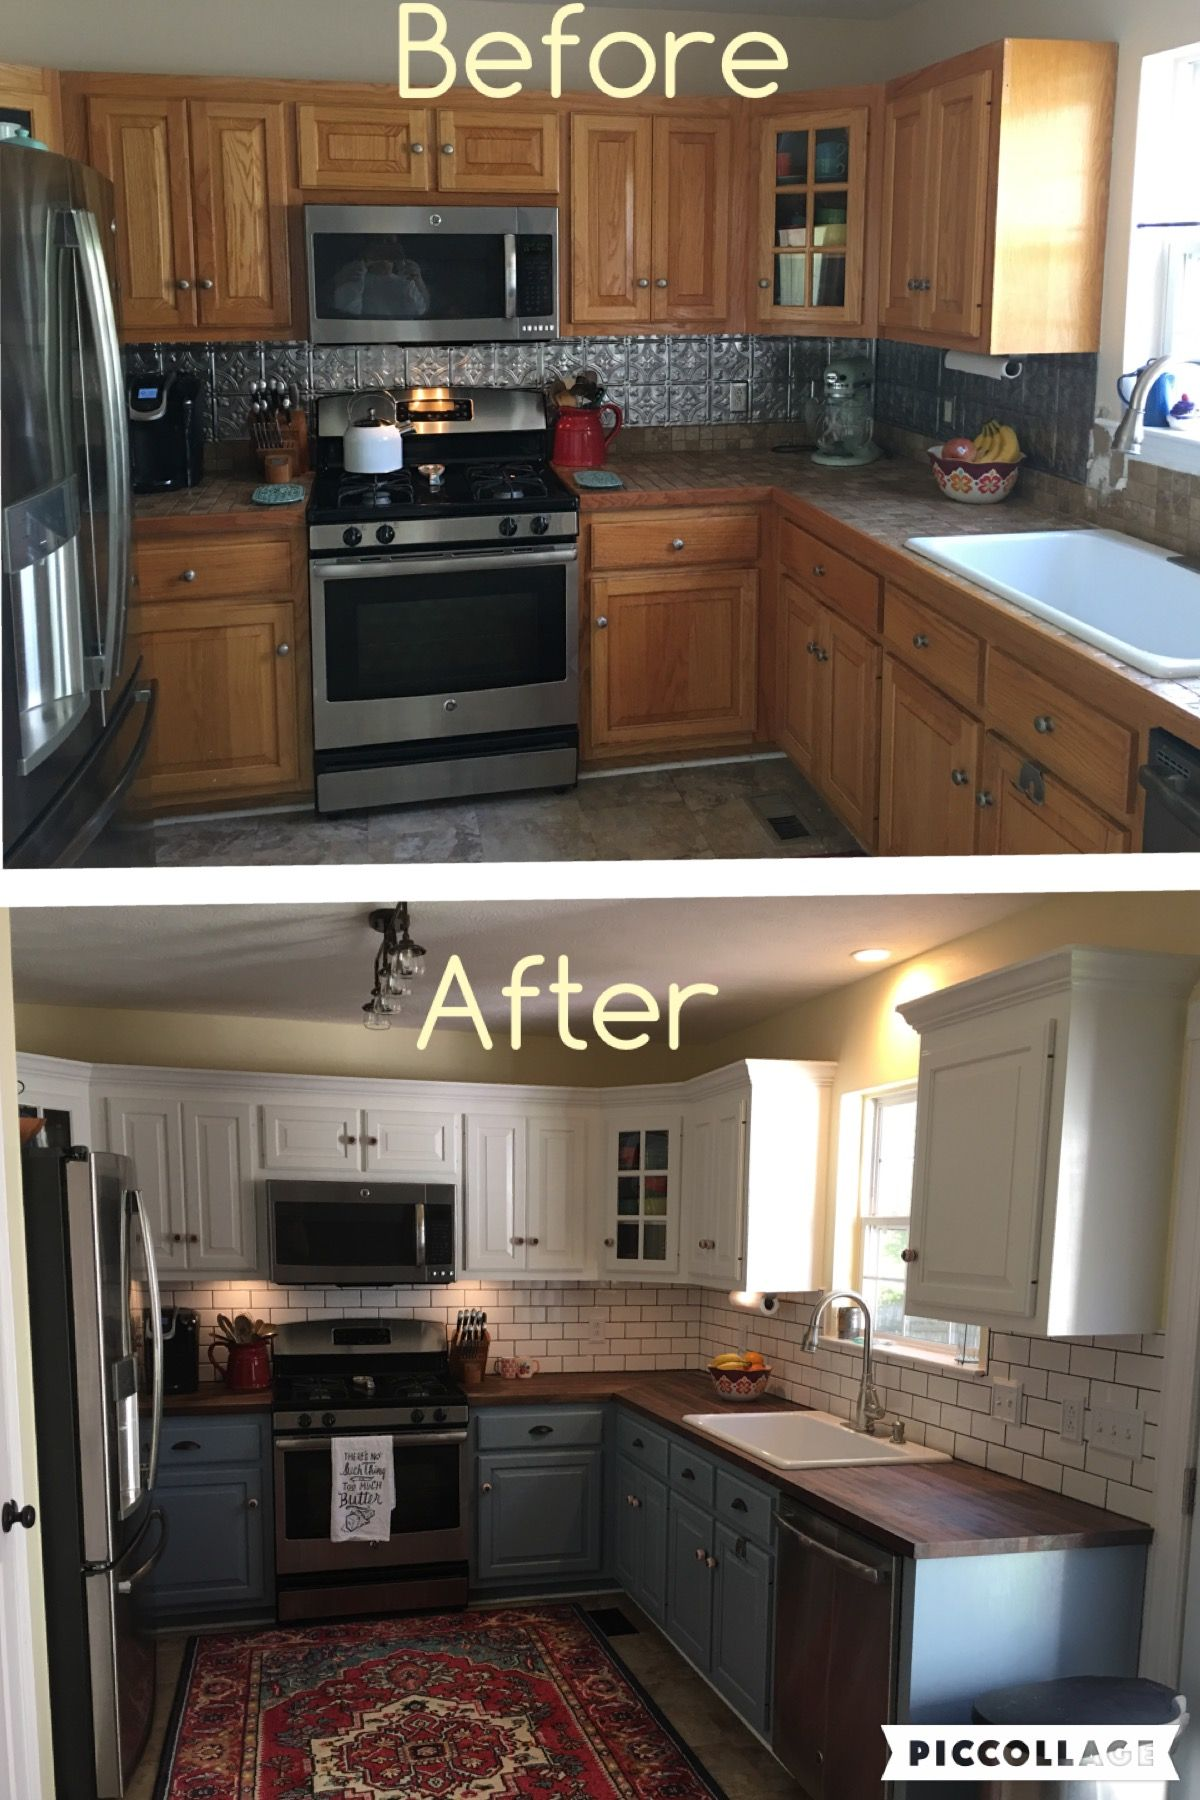 kitchen updates china cabinet two toned cabinets valspar enamel from lowes successful updating best paint by far